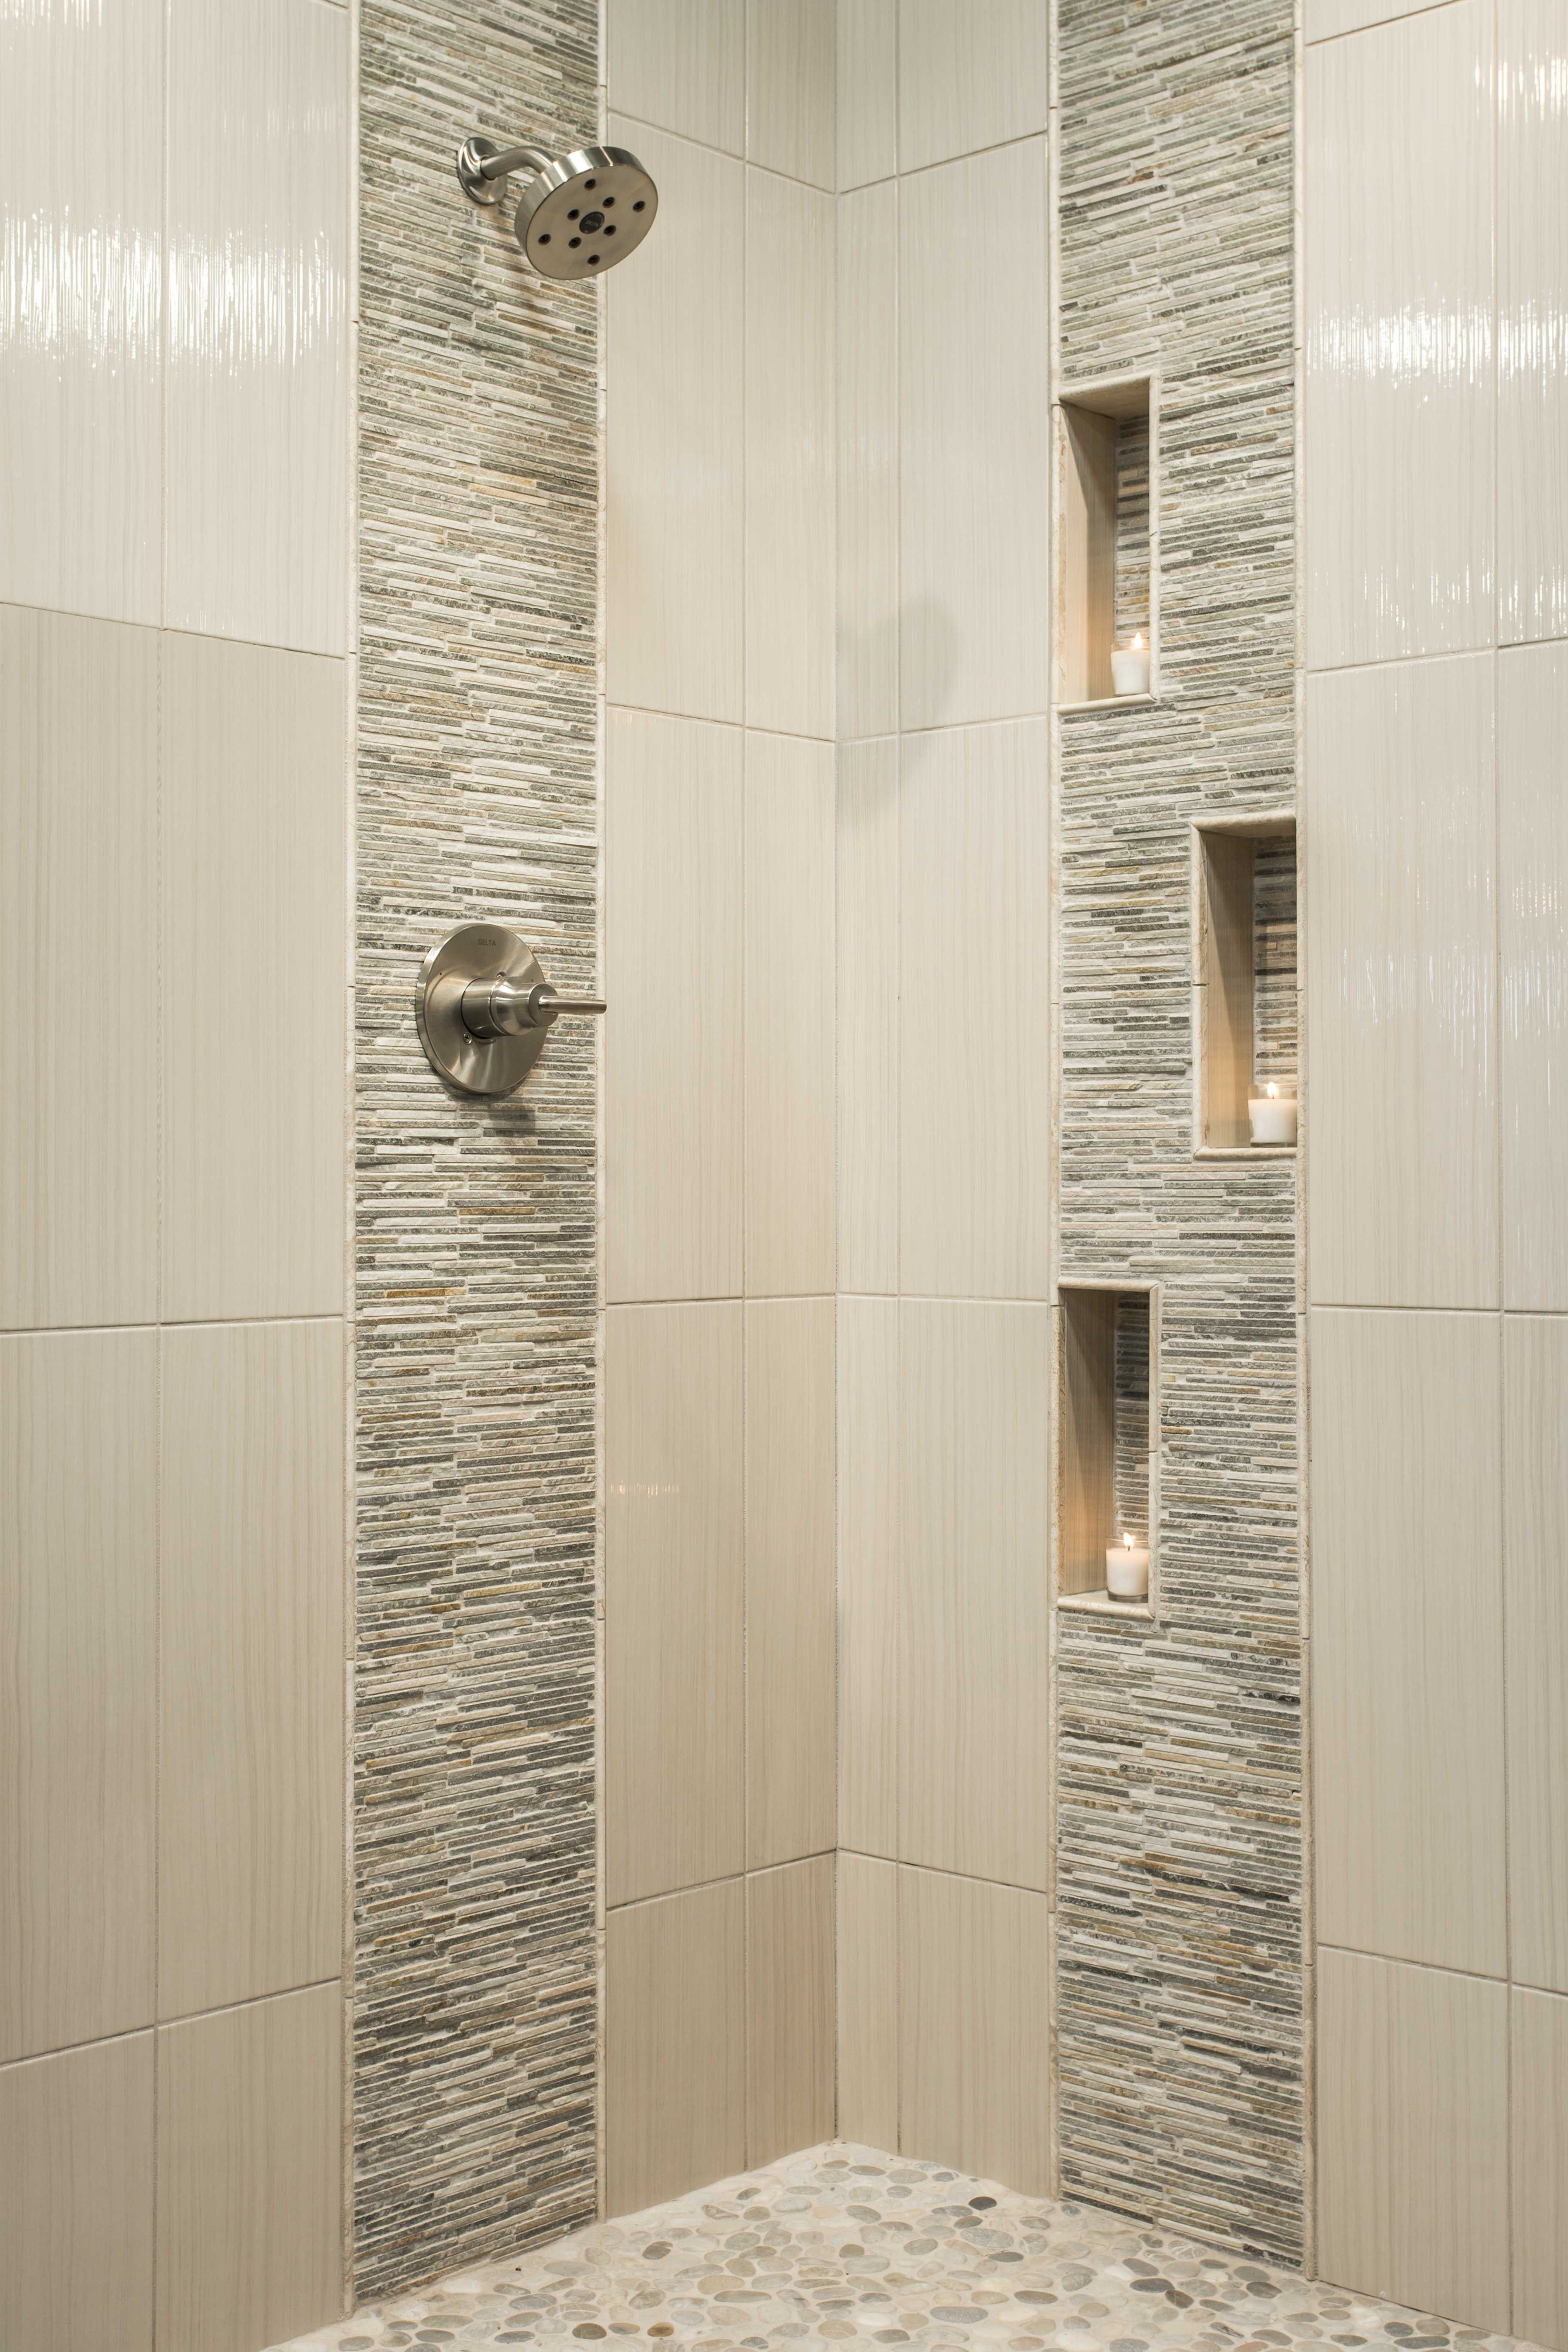 Bathroom Shower Tile Pinteres: bathroom tile decorating ideas